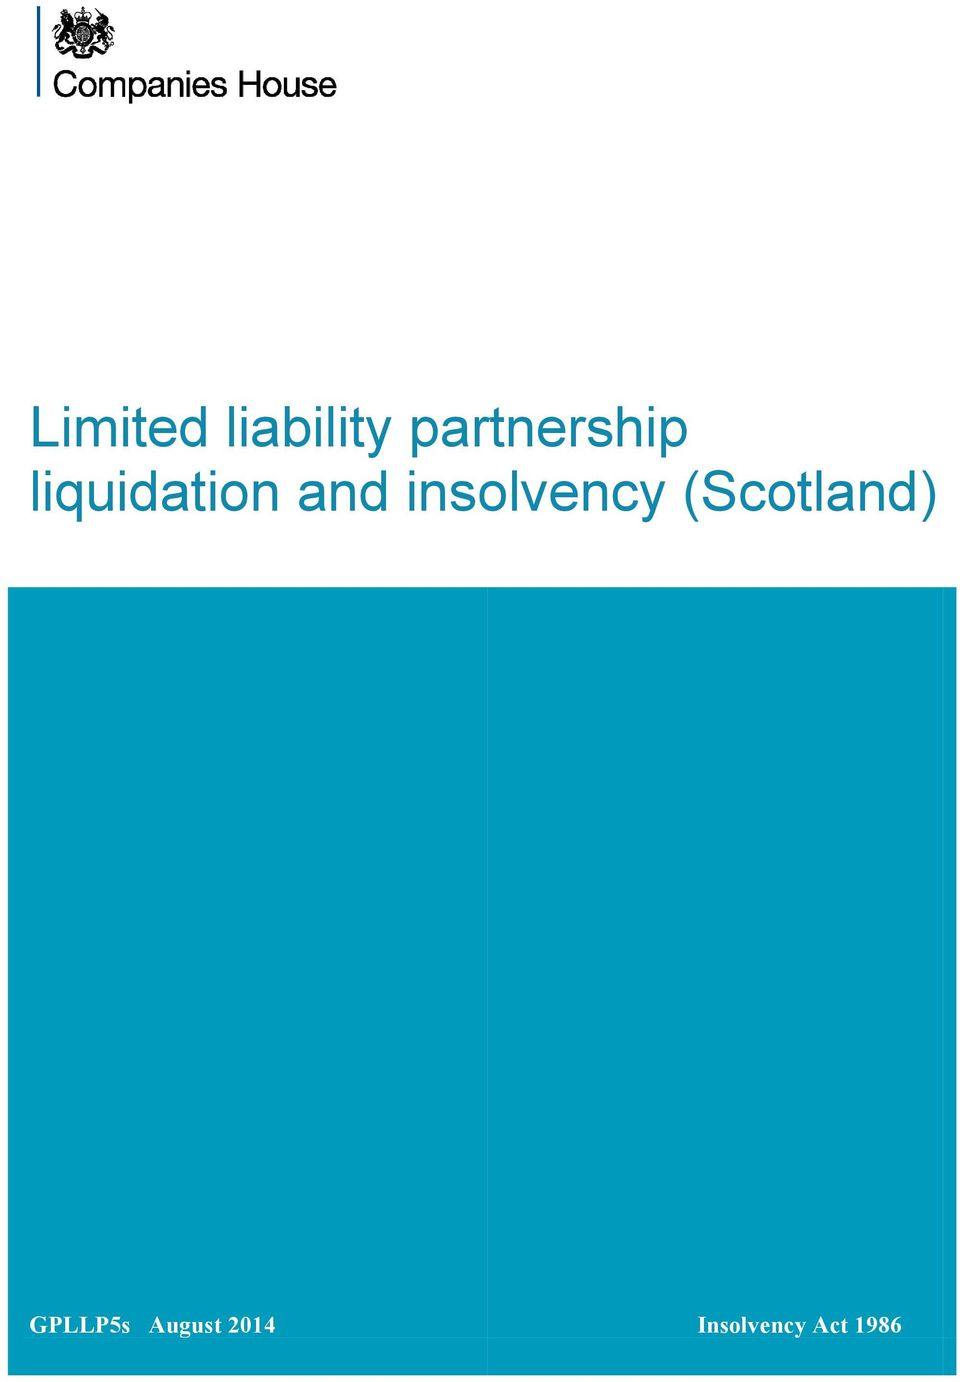 and insolvency (Scotland)